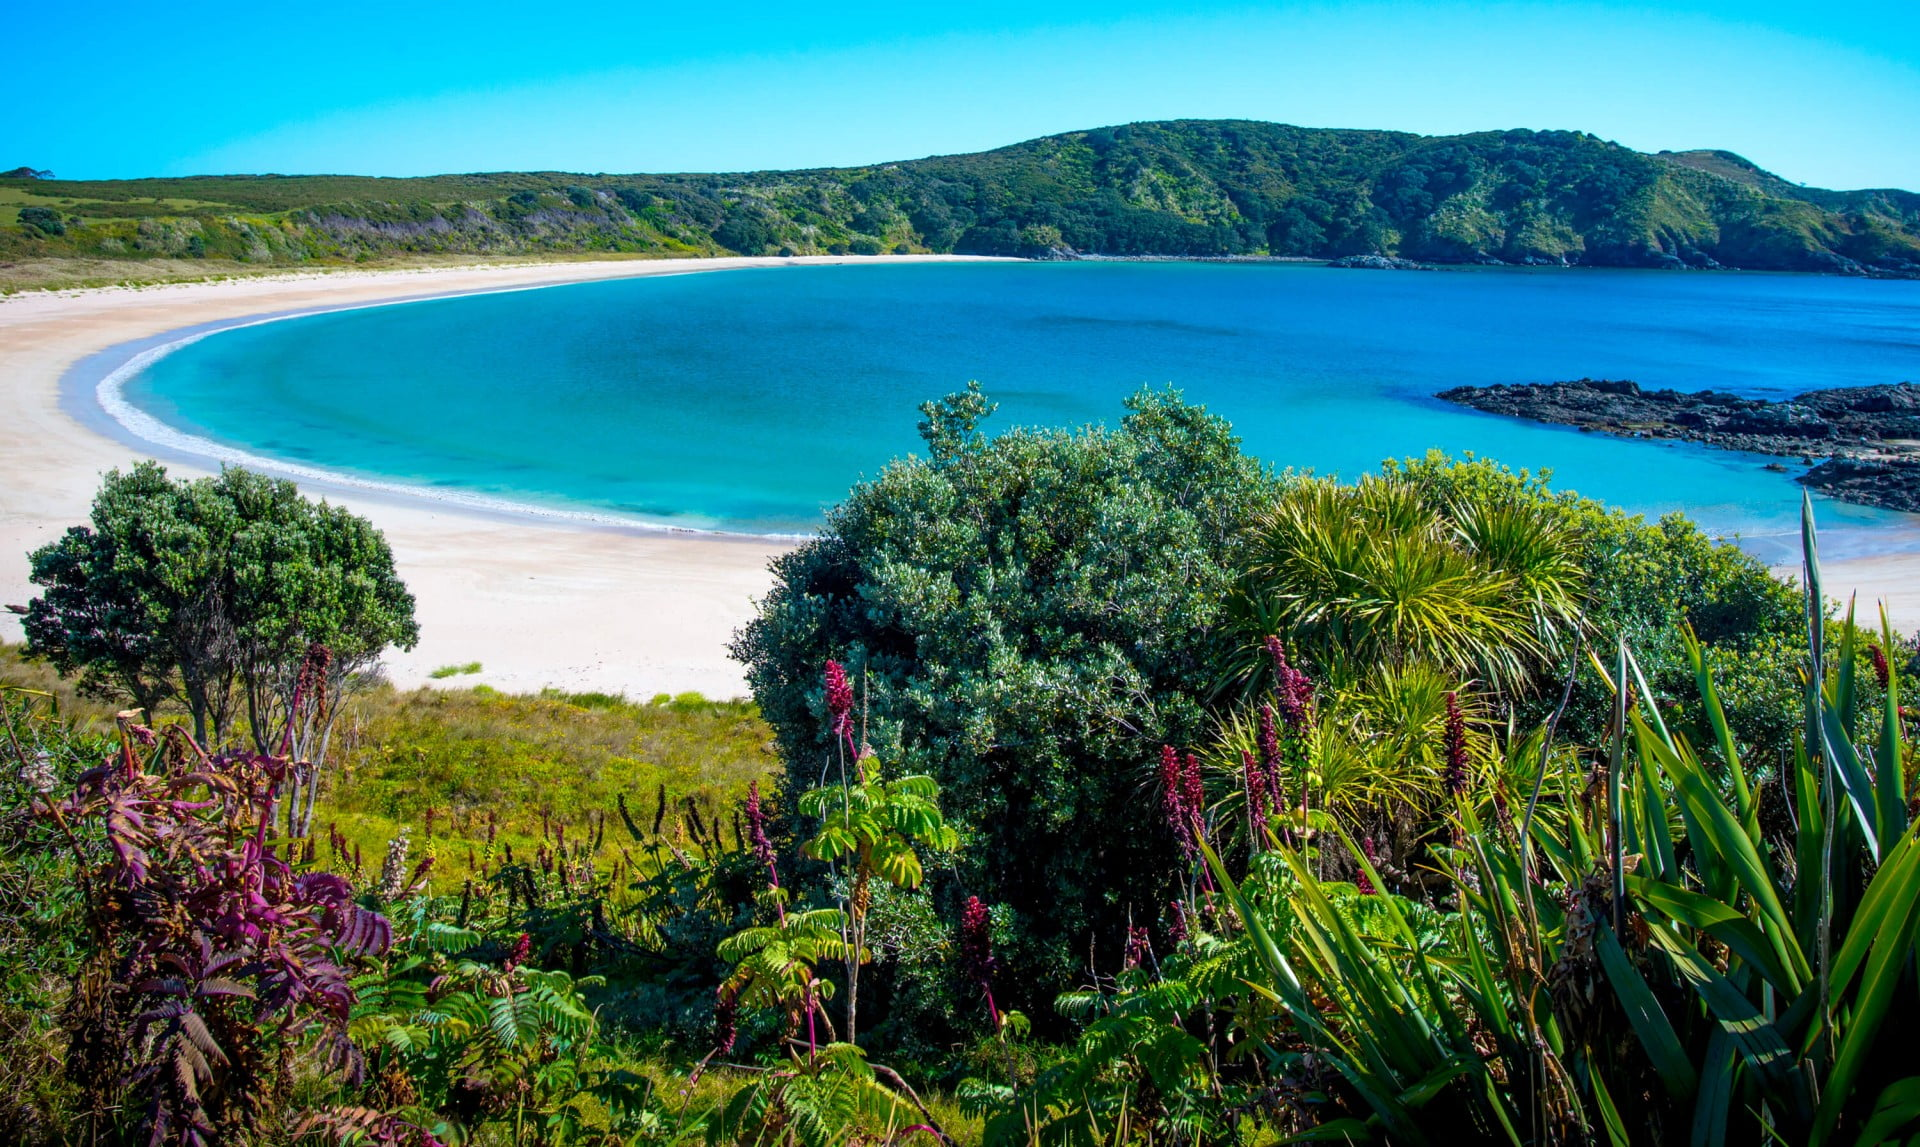 Maitai Bay, Karikari Peninsula, Northland, New Zealand.